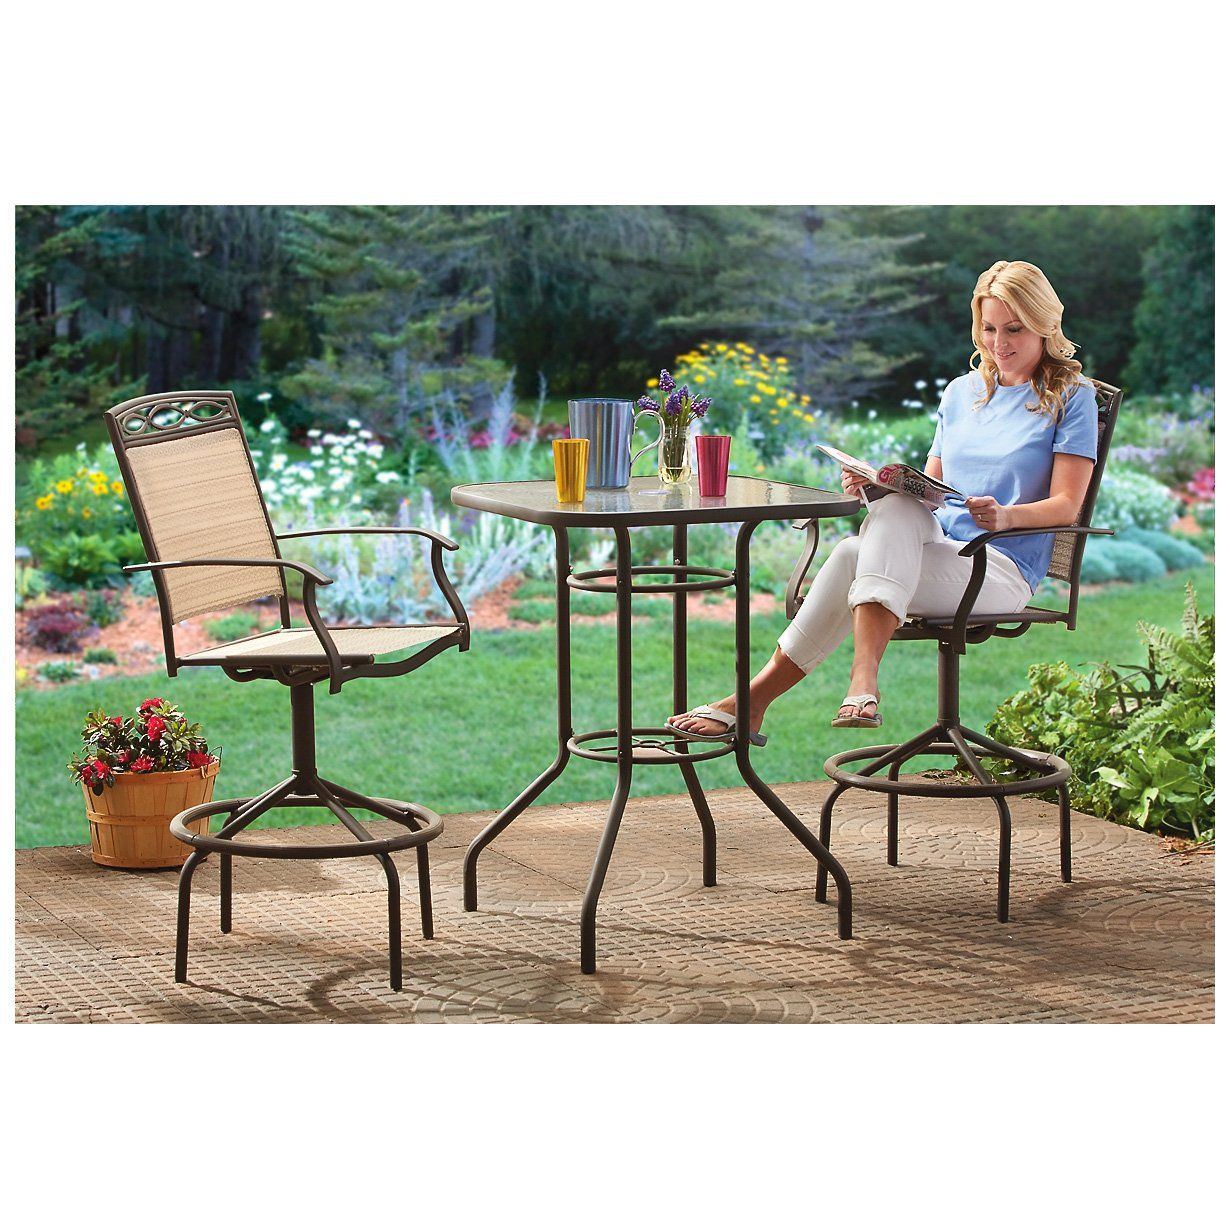 Amazon.com : CASTLECREEK 3 Piece Patio Bistro Dining Set, Bar Height :  Outdoor And Patio Furniture Sets : Garden & Outdoor - Amazon.com : CASTLECREEK 3 Piece Patio Bistro Dining Set, Bar Height